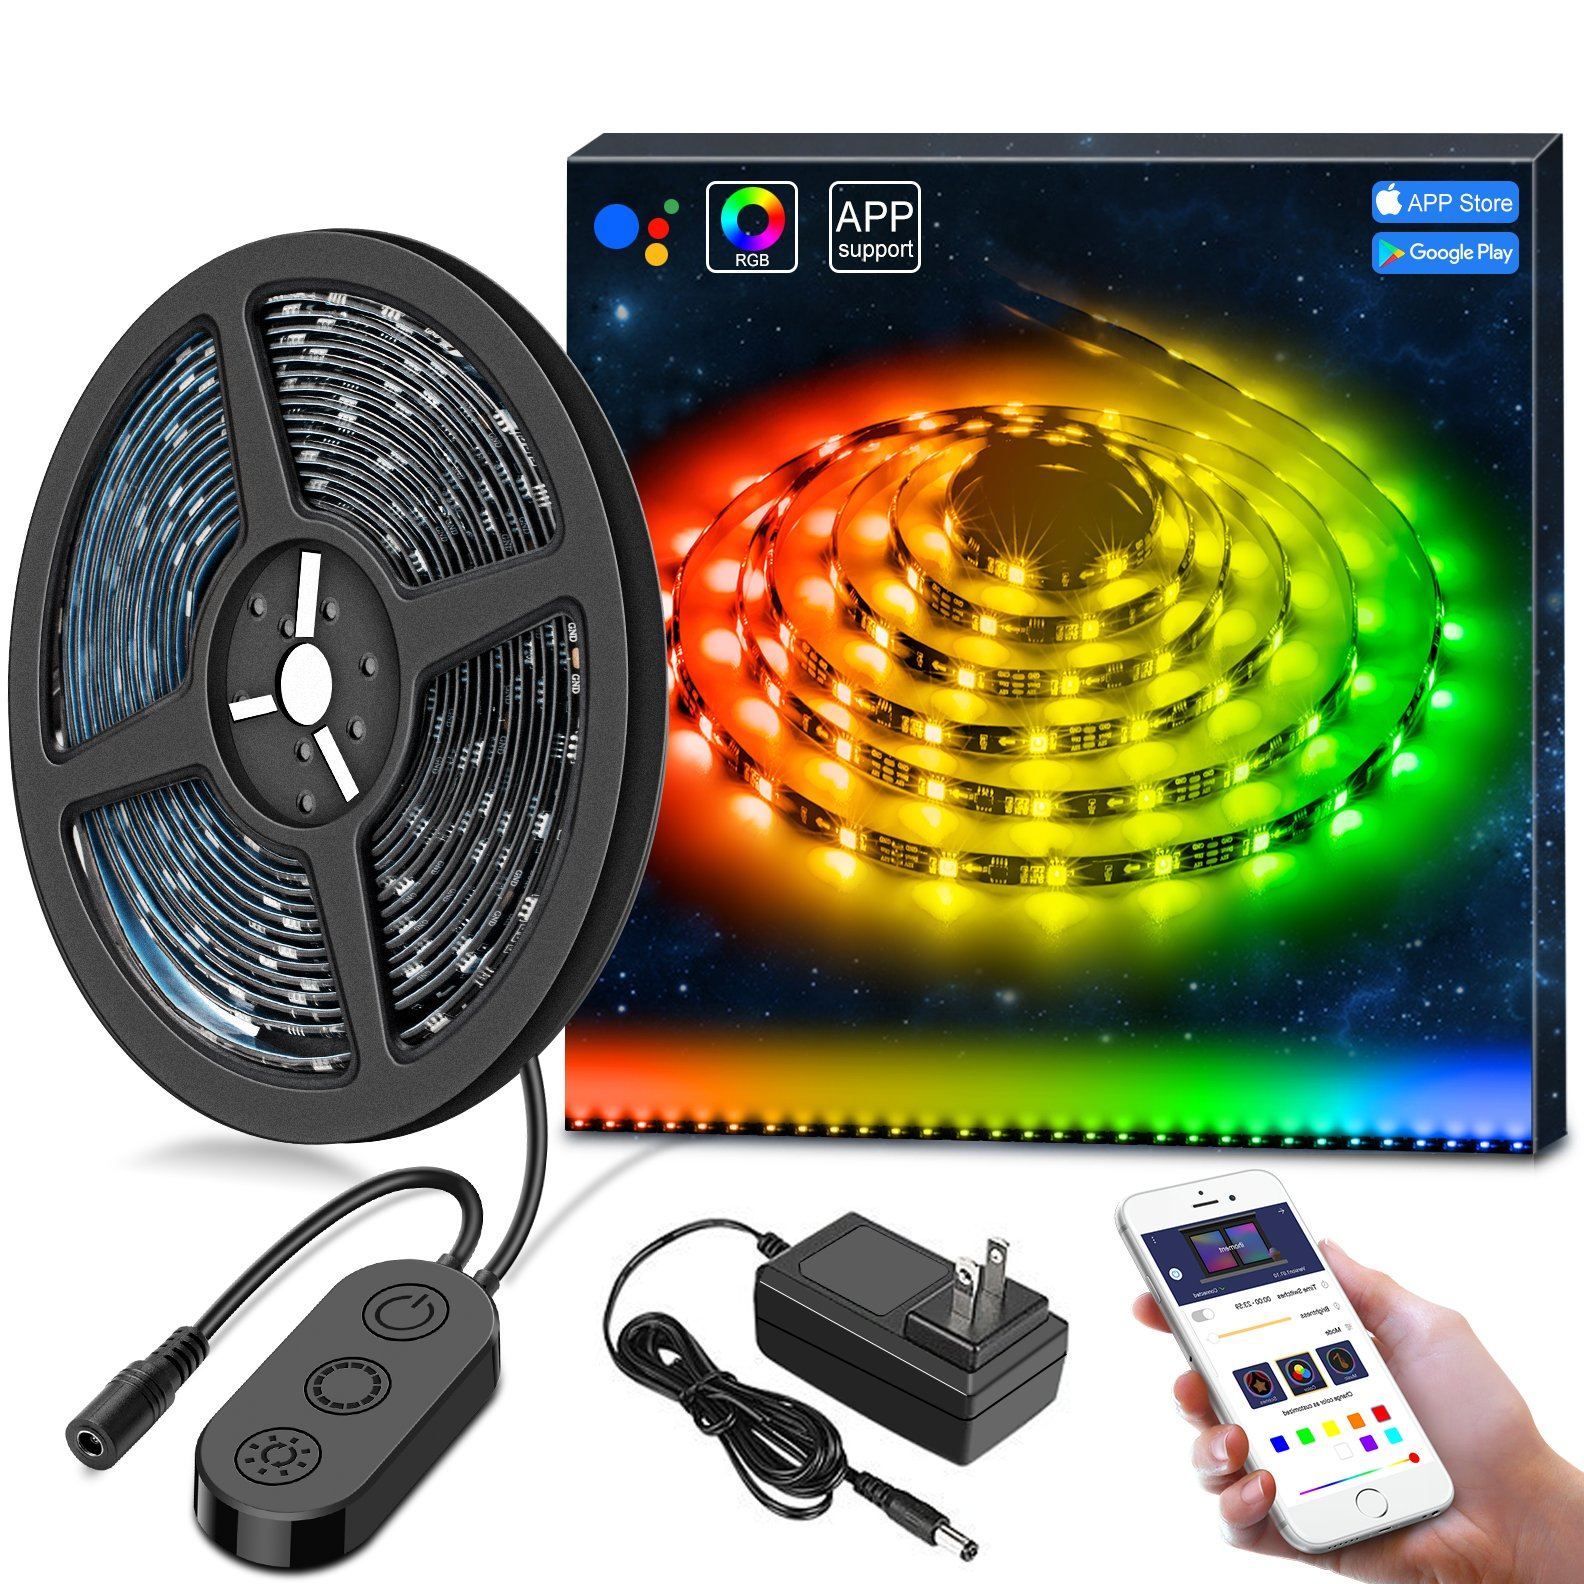 MINGER DreamColor LED Strip Lights Built IC, 9.8FT/3M LED Lights Sync to Music, Waterproof RGB Rope Light with APP, 5050 Flexible Strip Lighting, LED Tape Lights, Led String Lights Kit, 12V UL Listed